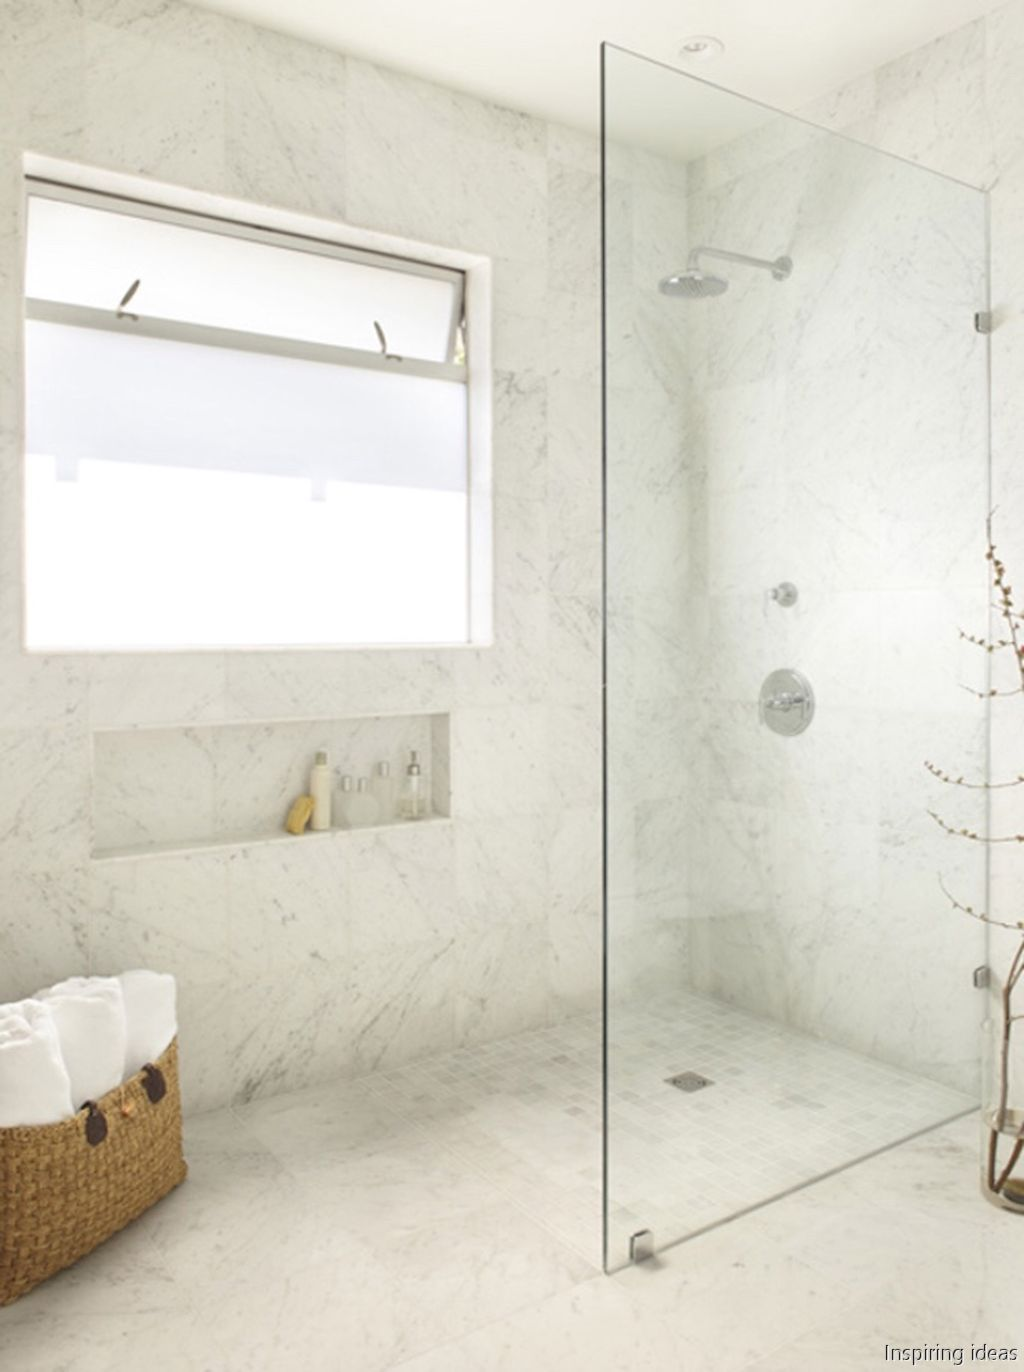 75 Curbless Shower Ideas that Pretty Awesome | Mid century modern ...